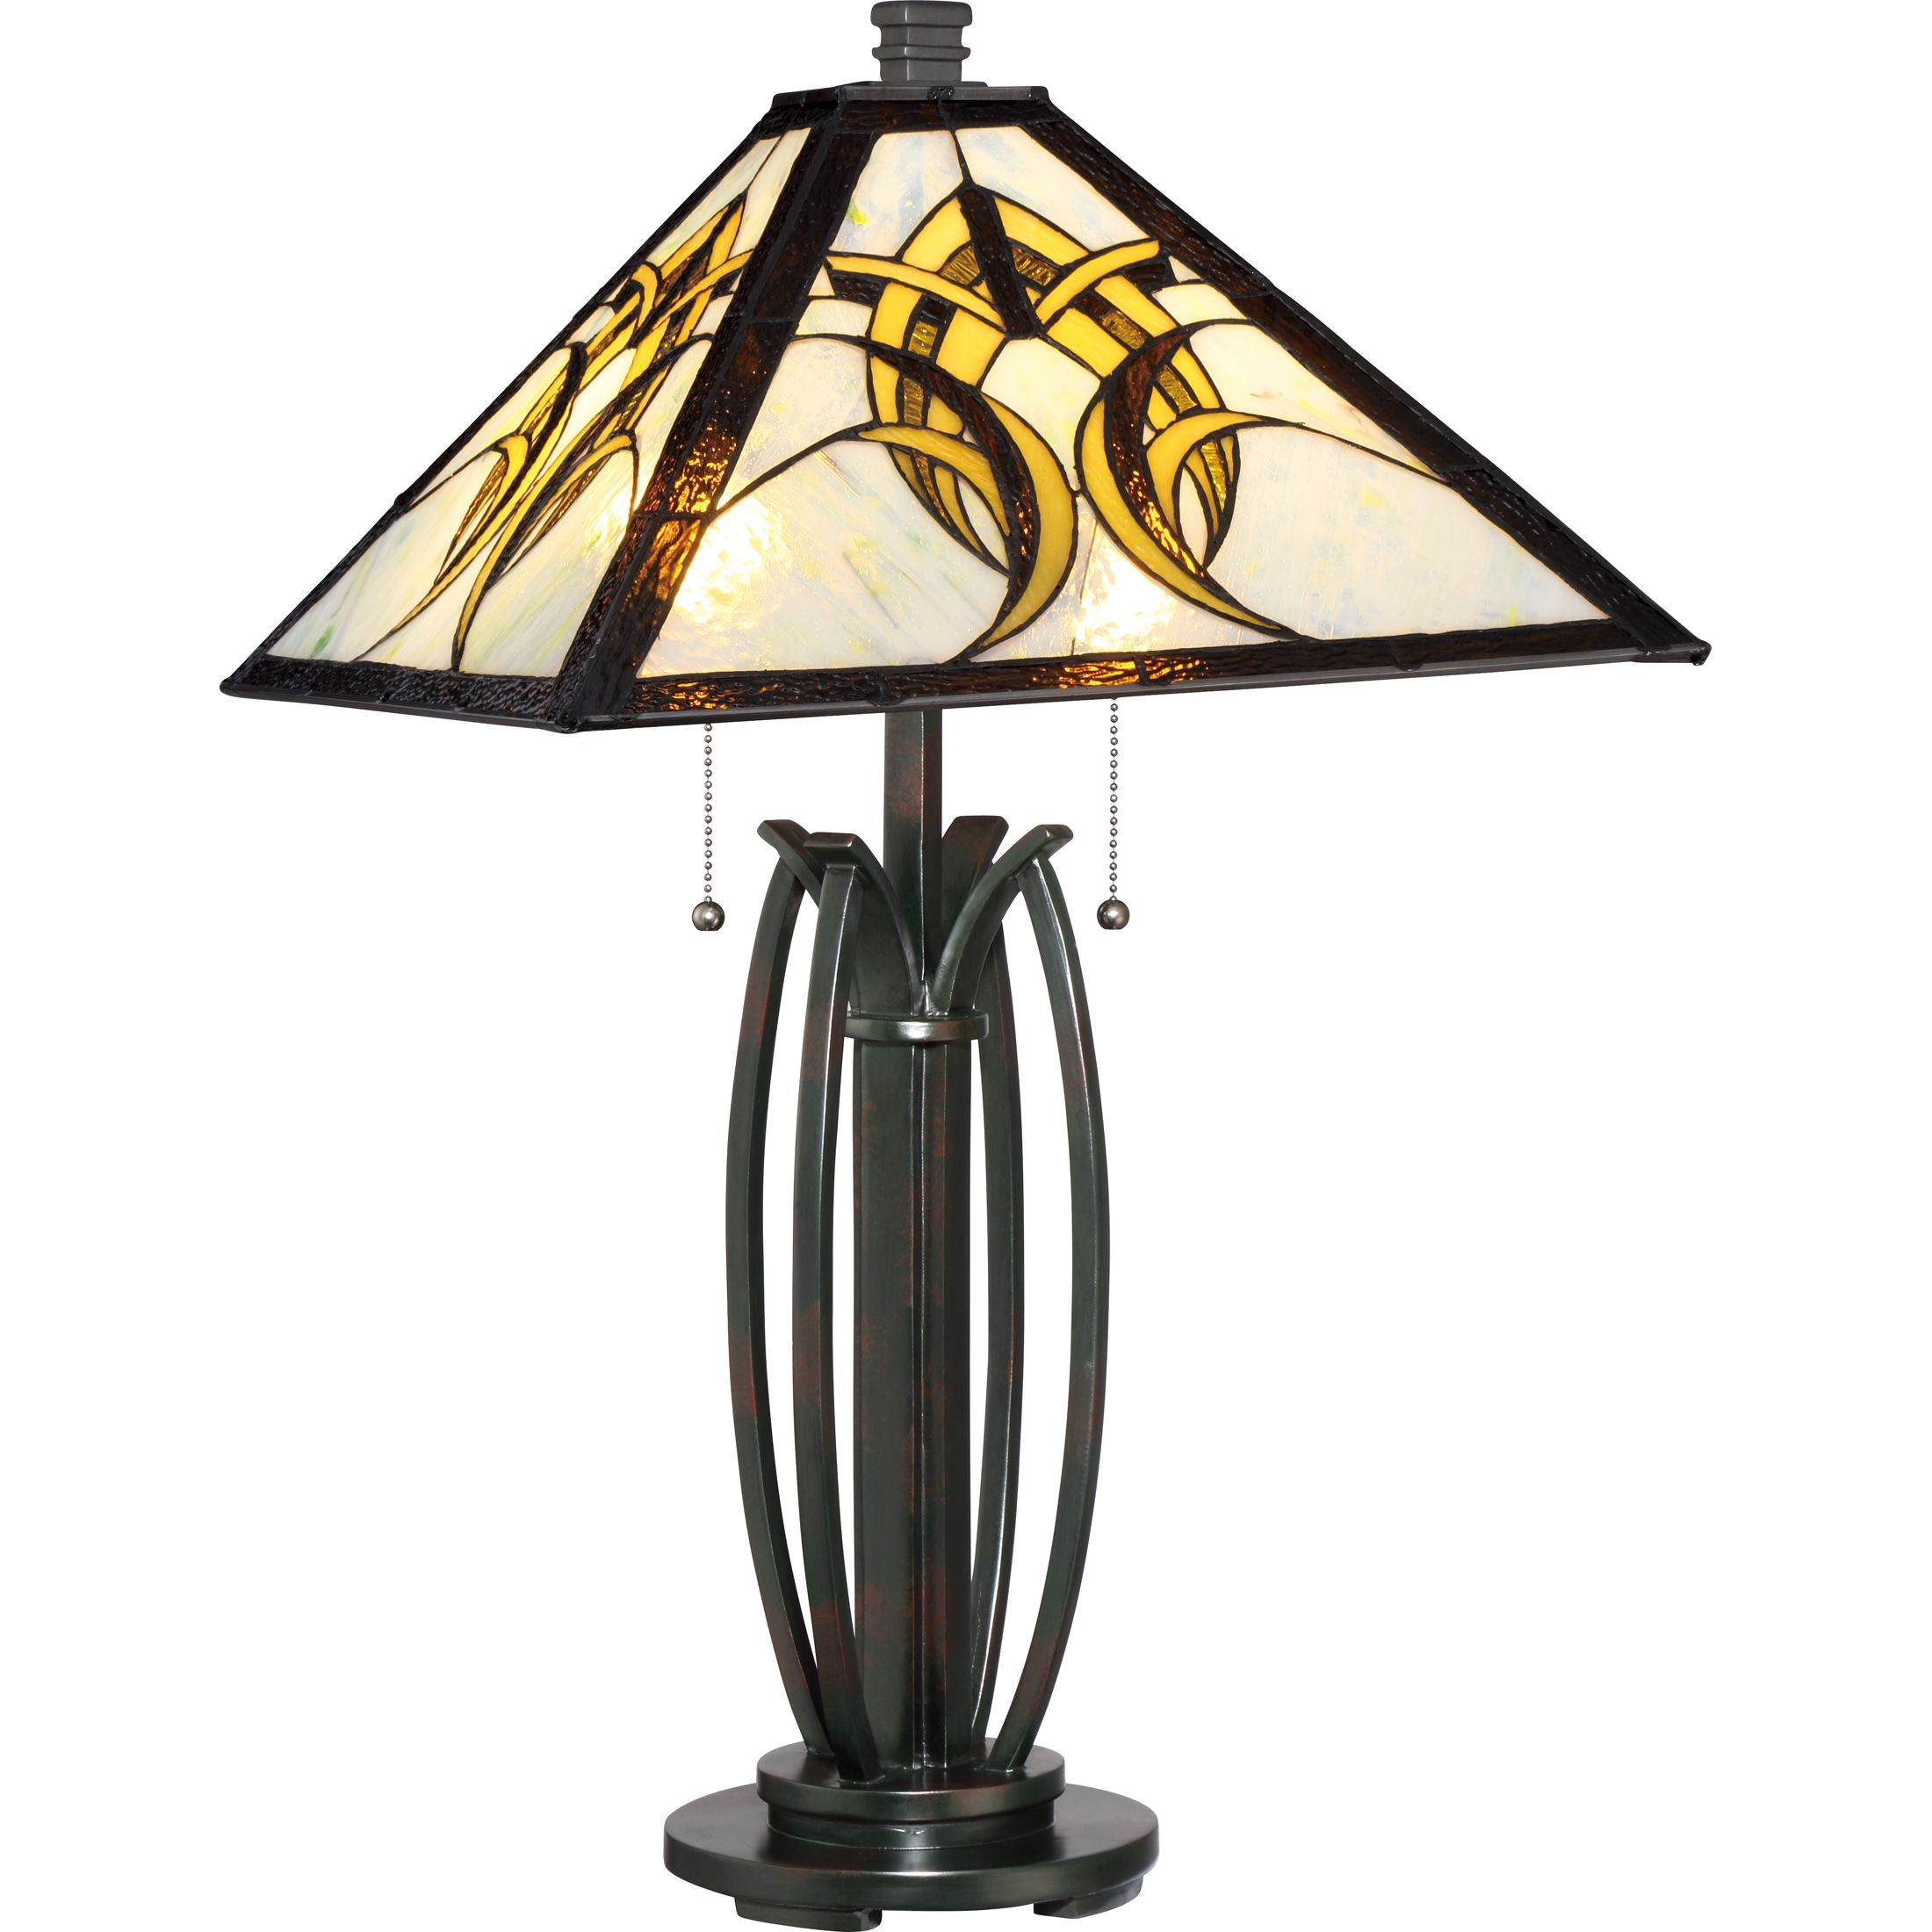 nickel about quoizel desk lamp included led qzspencertlbn sentinel details itm brushed spencer lamps